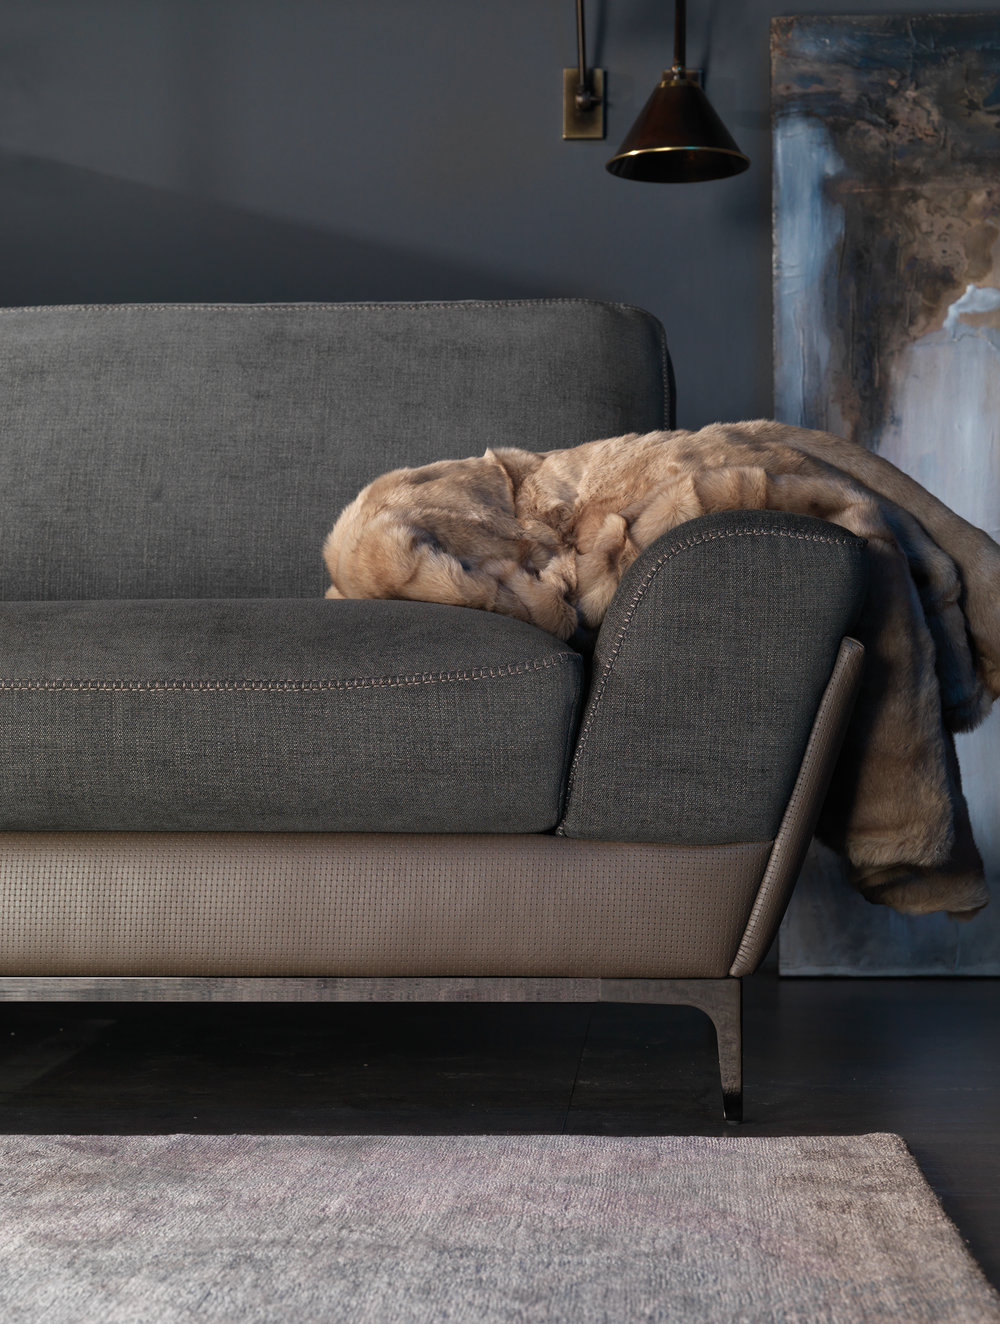 Borzalino DIDEROT sofa via Masha Shapiro Agency UK.jpg